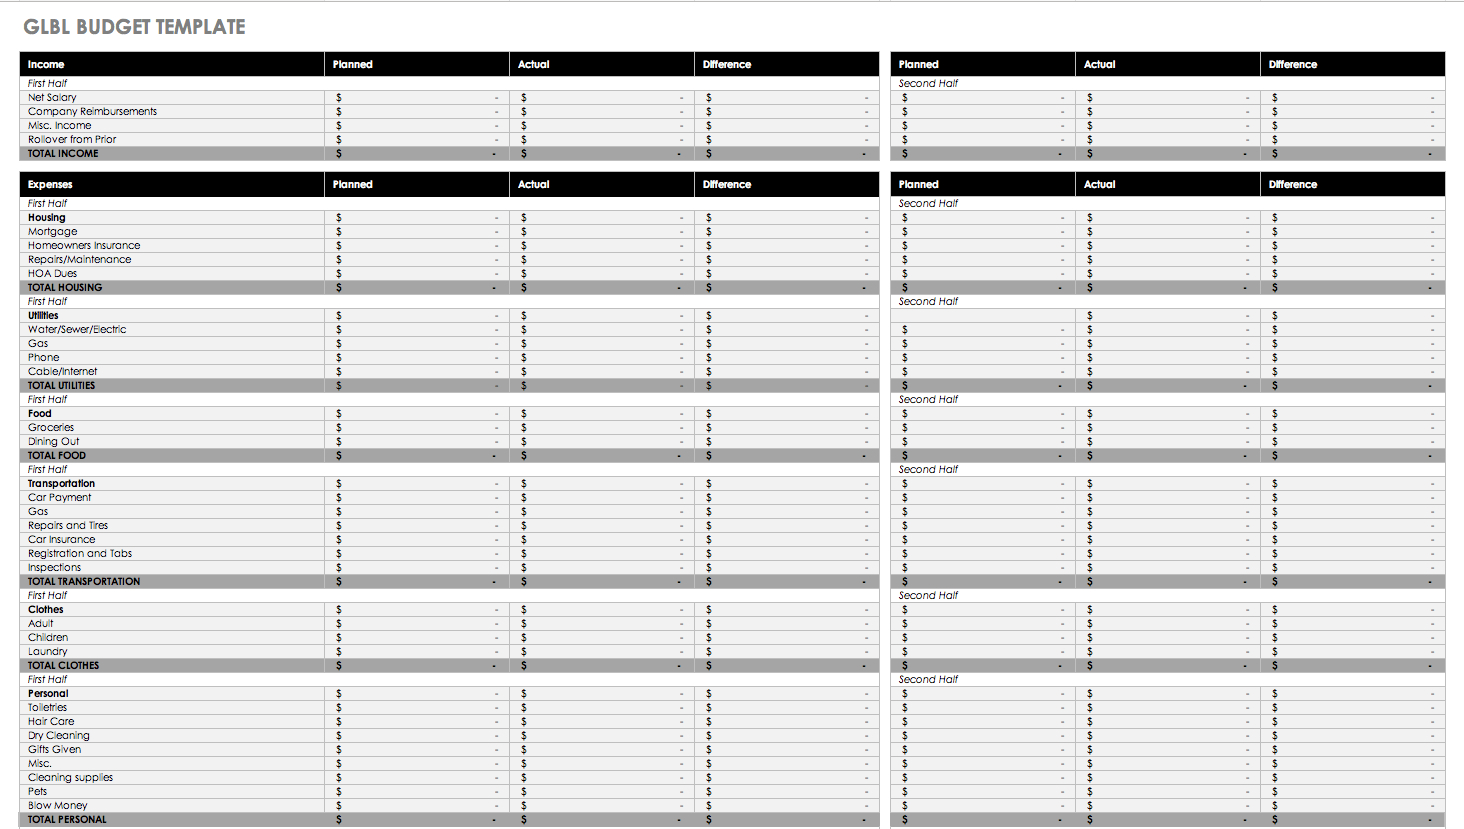 Budget Management Spreadsheet With Regard To Free Budget Templates In Excel For Any Use